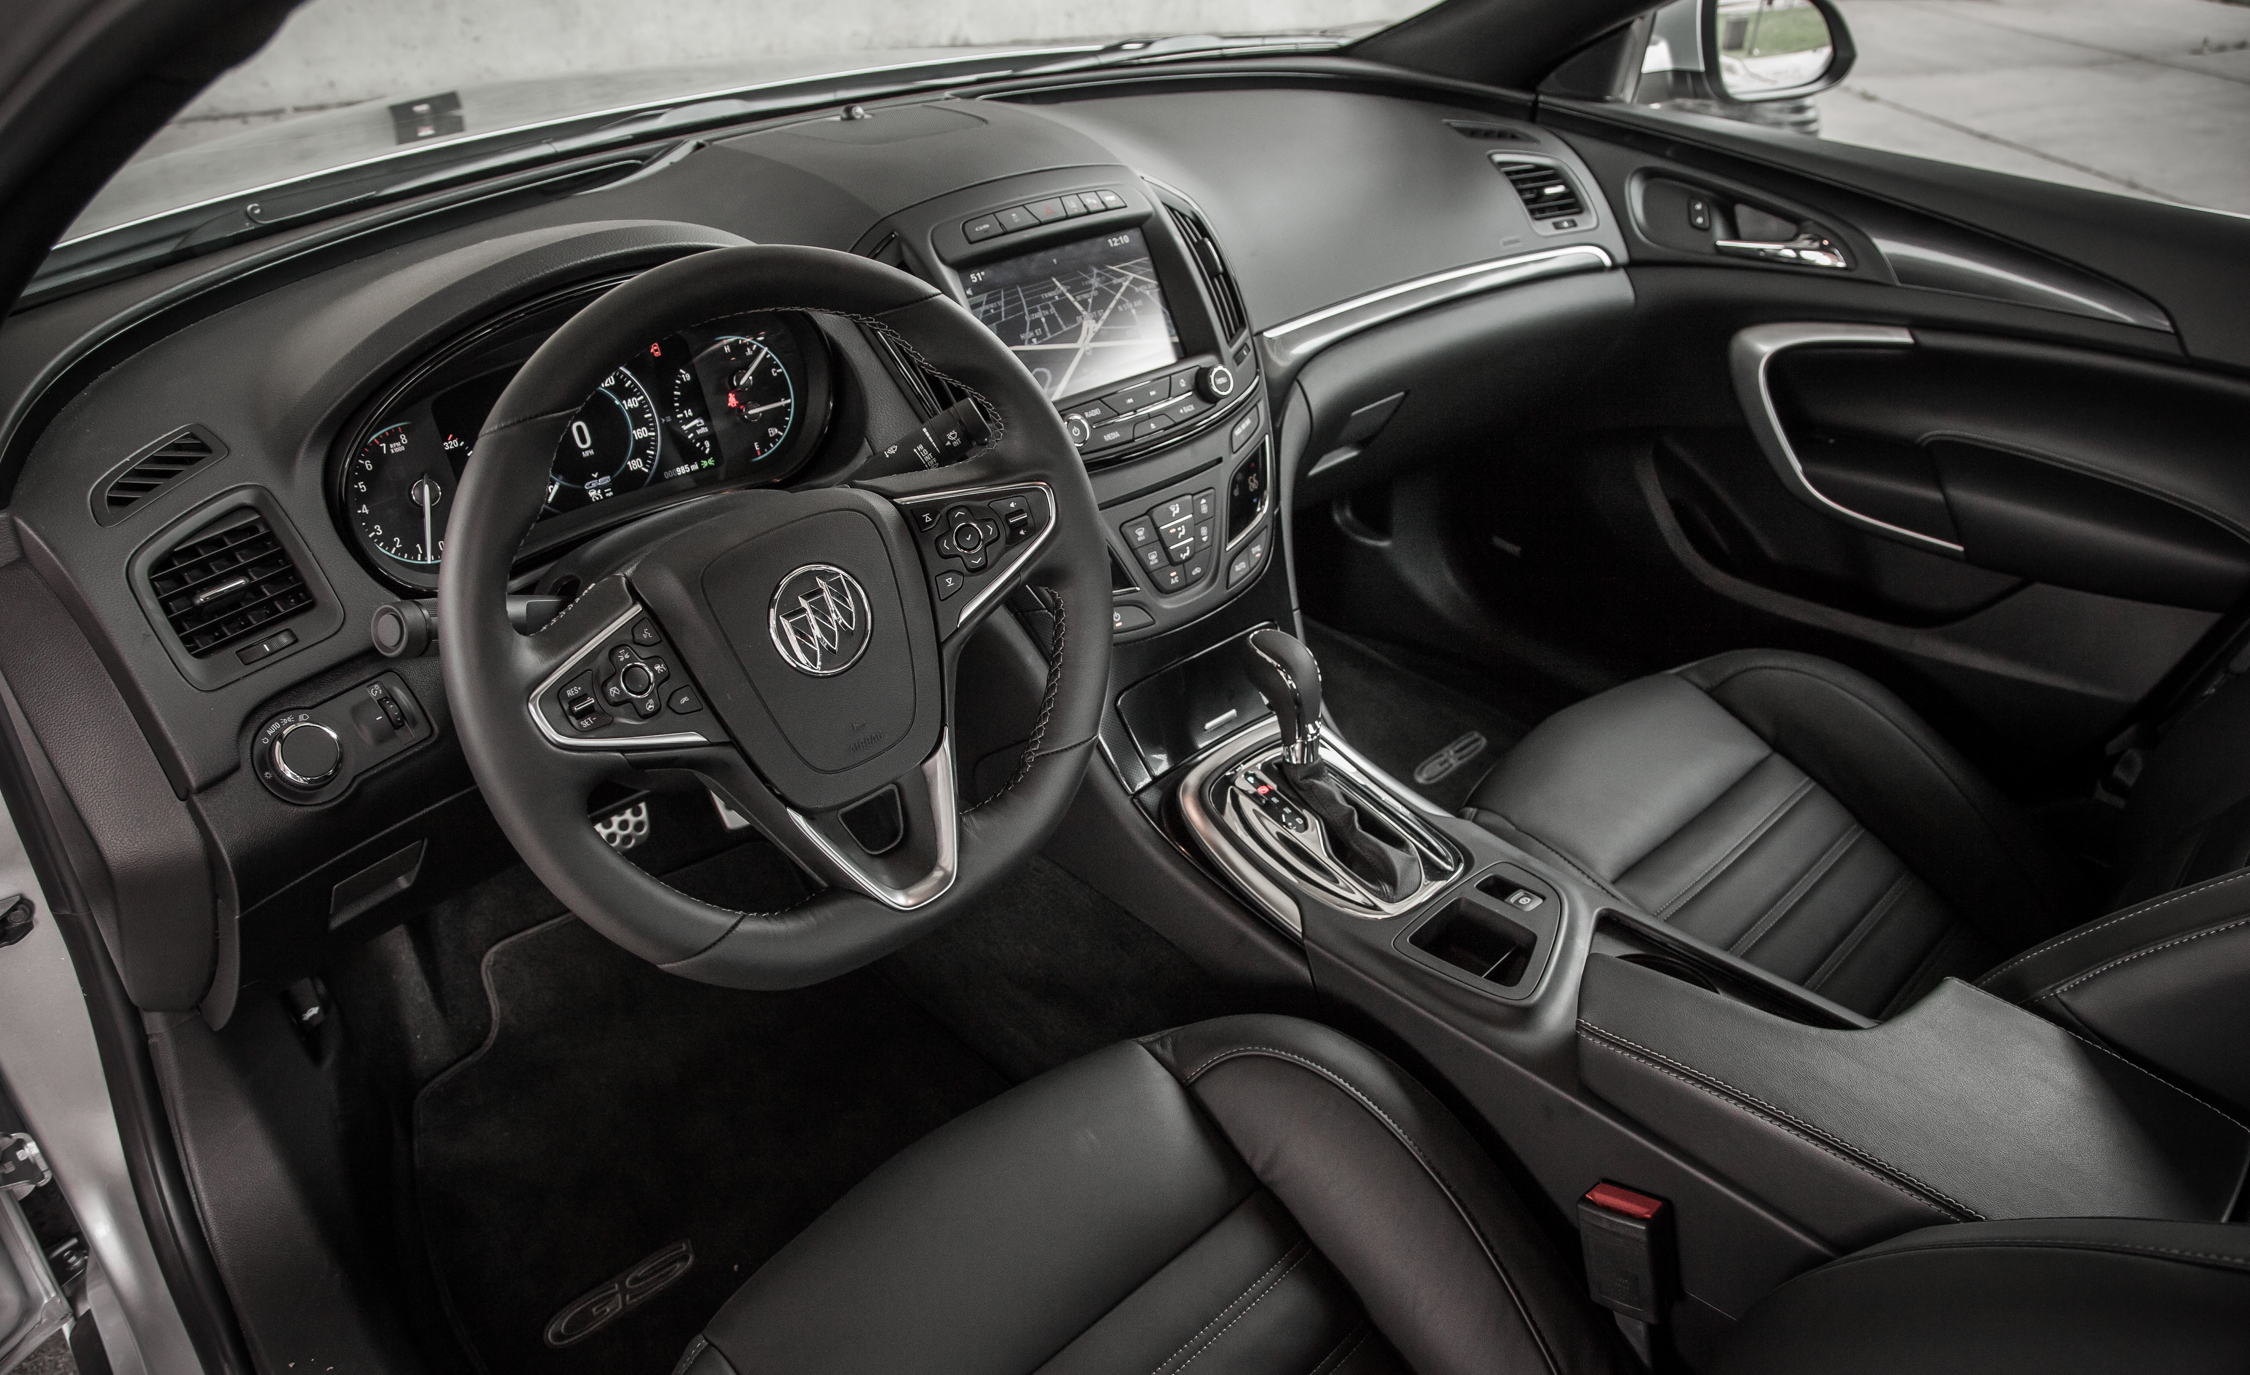 2014 Buick Regal GS Interior (Photo 11 of 30)